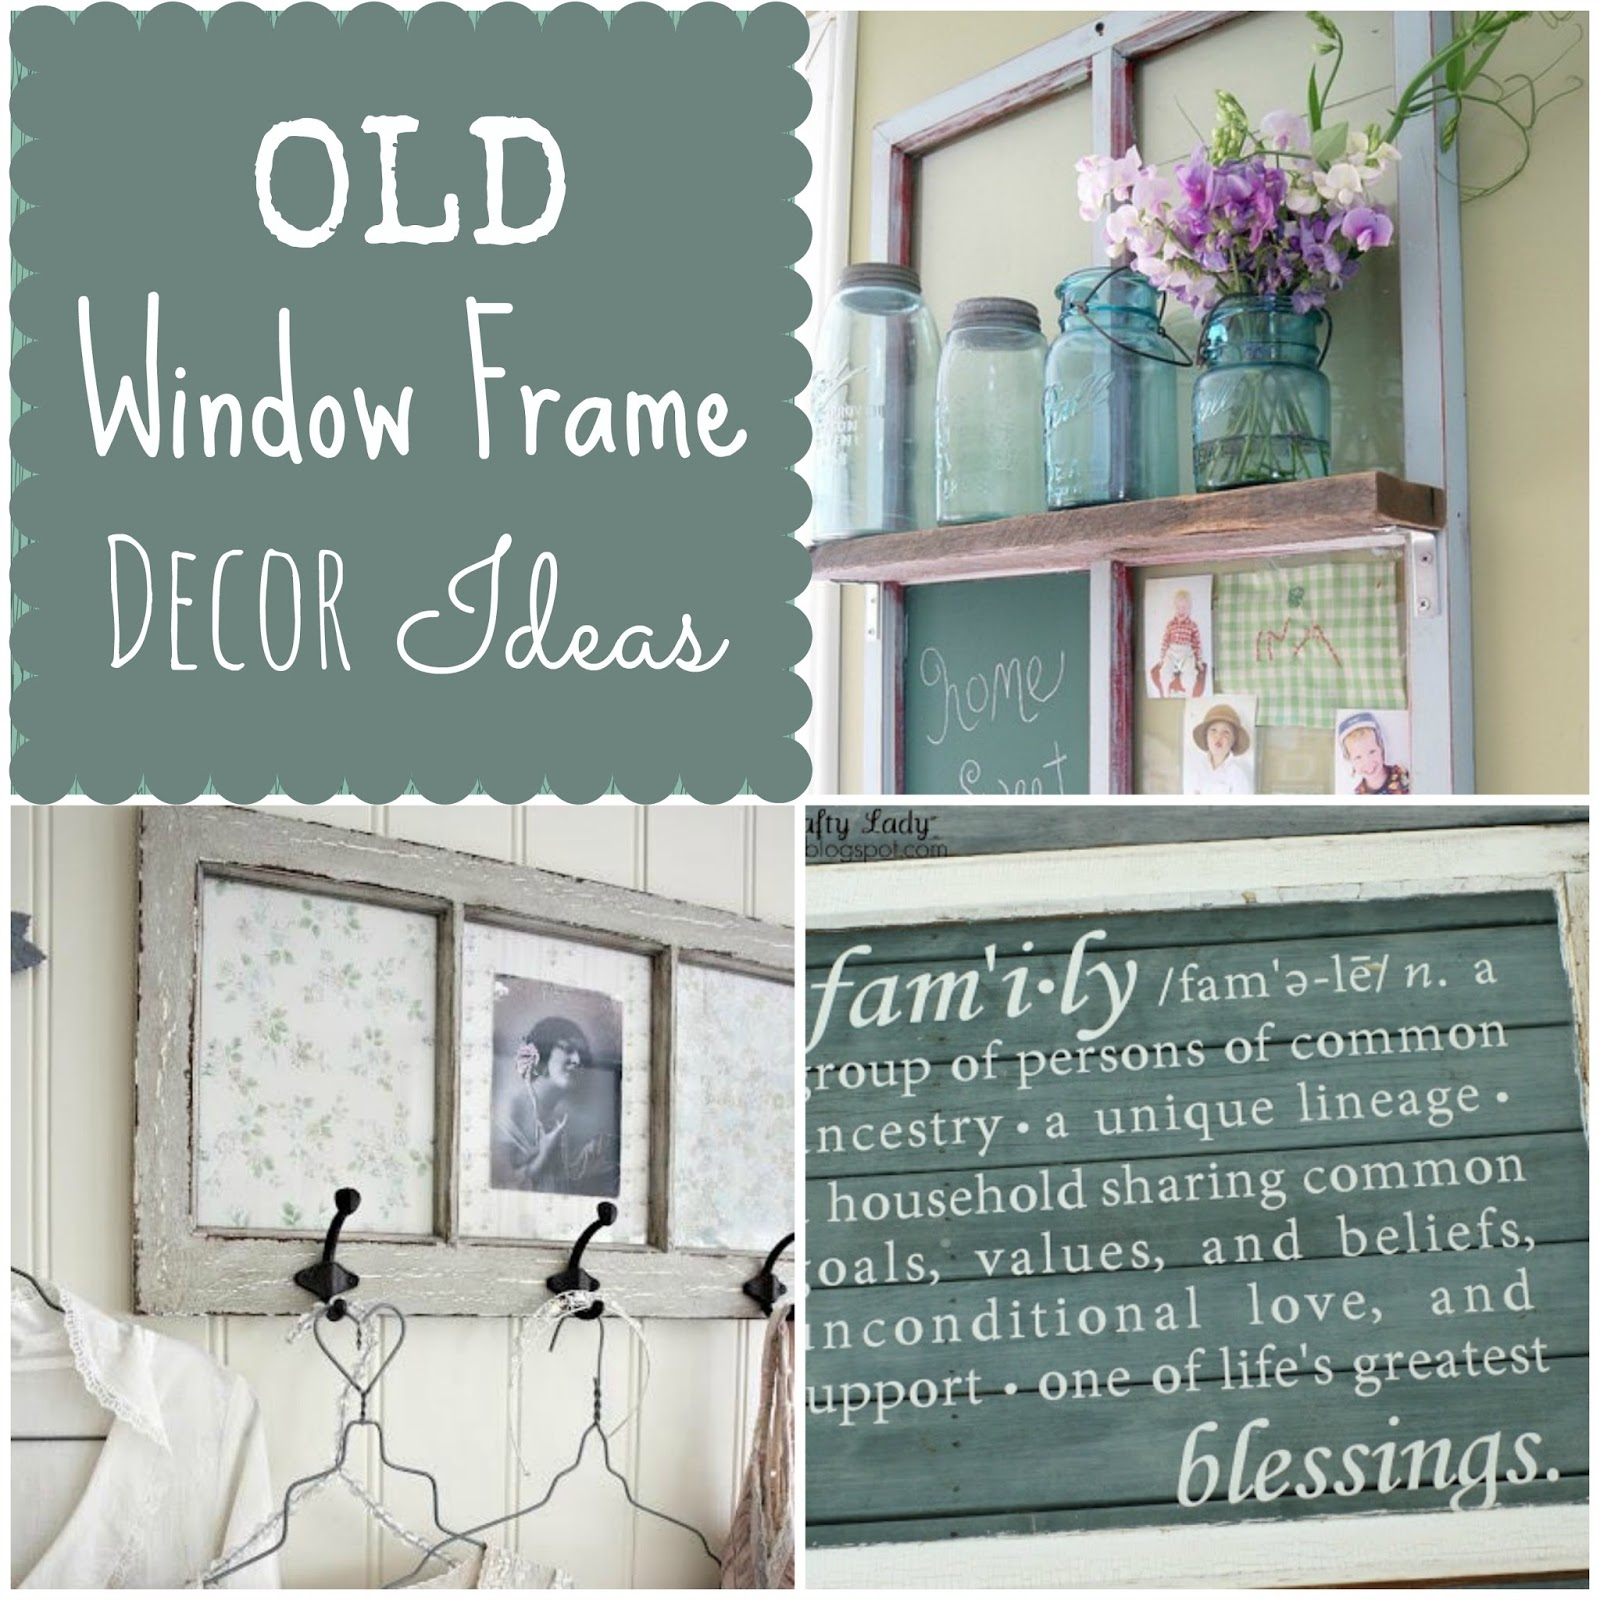 Couches and Cupcakes: How To Use Old Window Frames in Decor